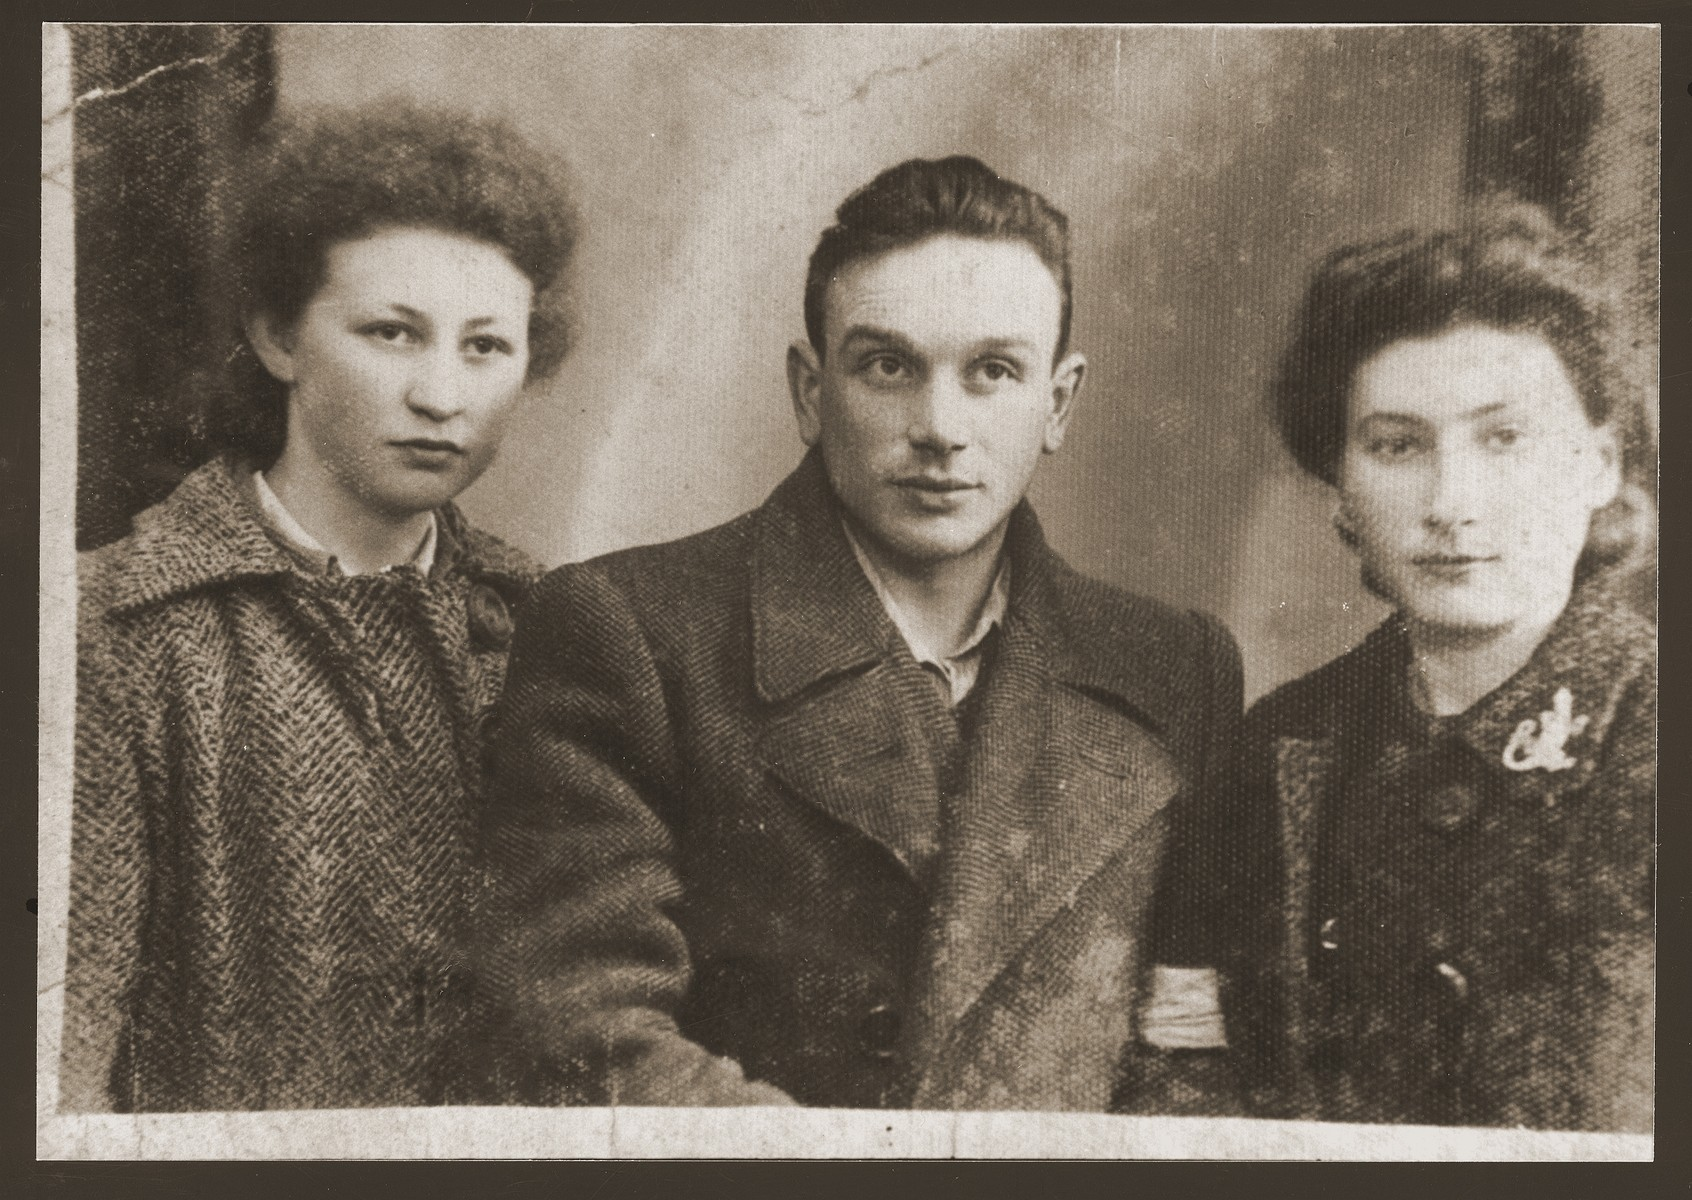 Portrait of three youths in the Dabrowa ghetto.  Pictured from left to right are Bronka Rubinsztajn, Eljezer Geler and Shewa Szeps.